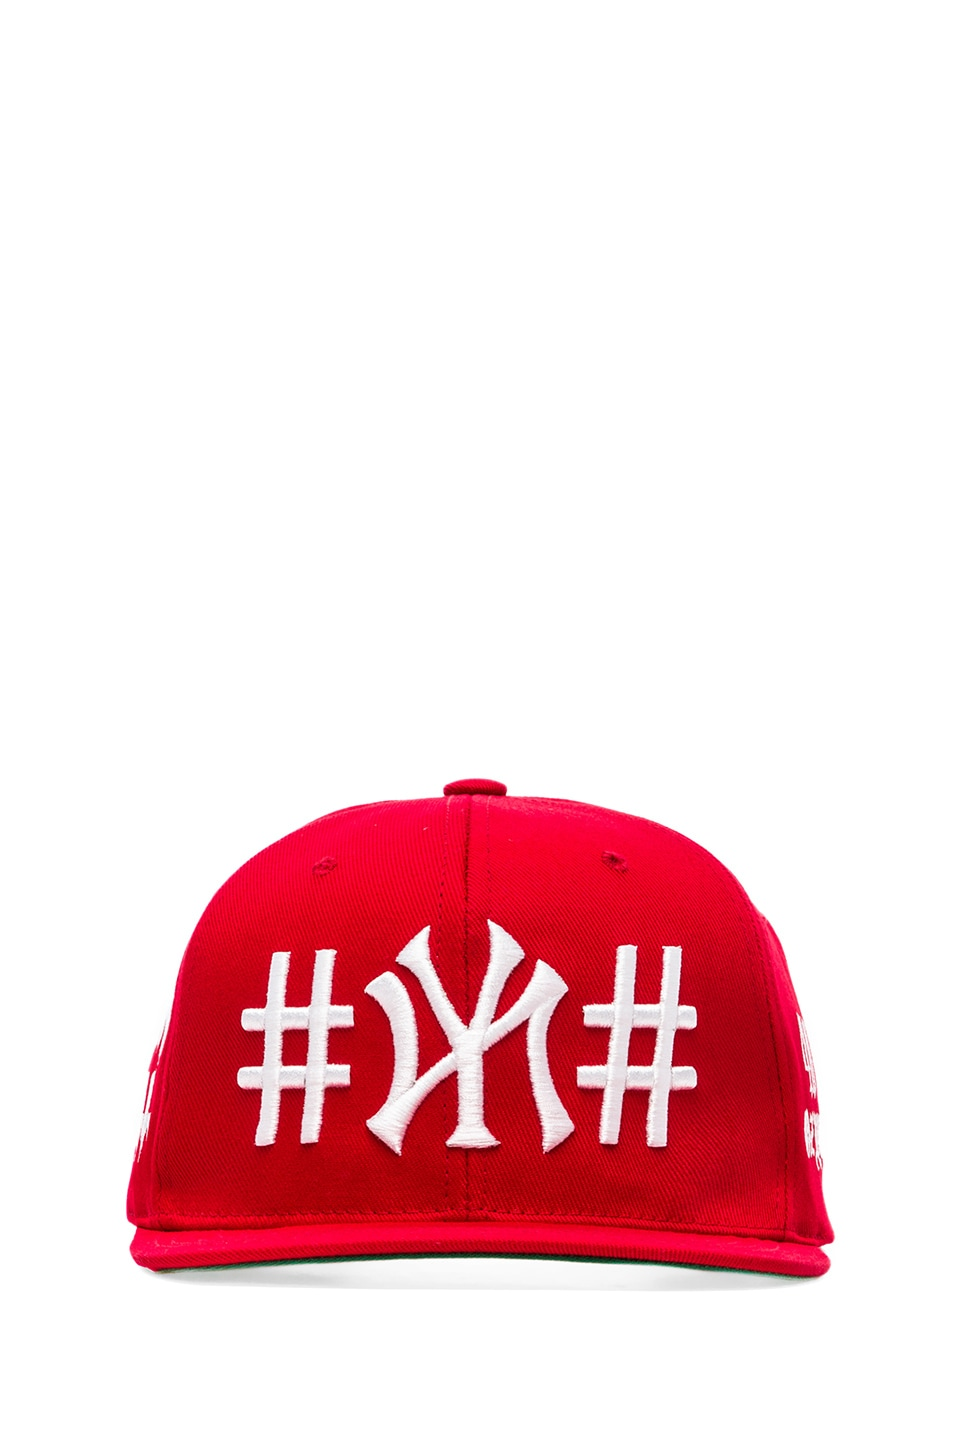 0ae4e1c6e3a 40 OZ NY Been Trill Snapback in Red